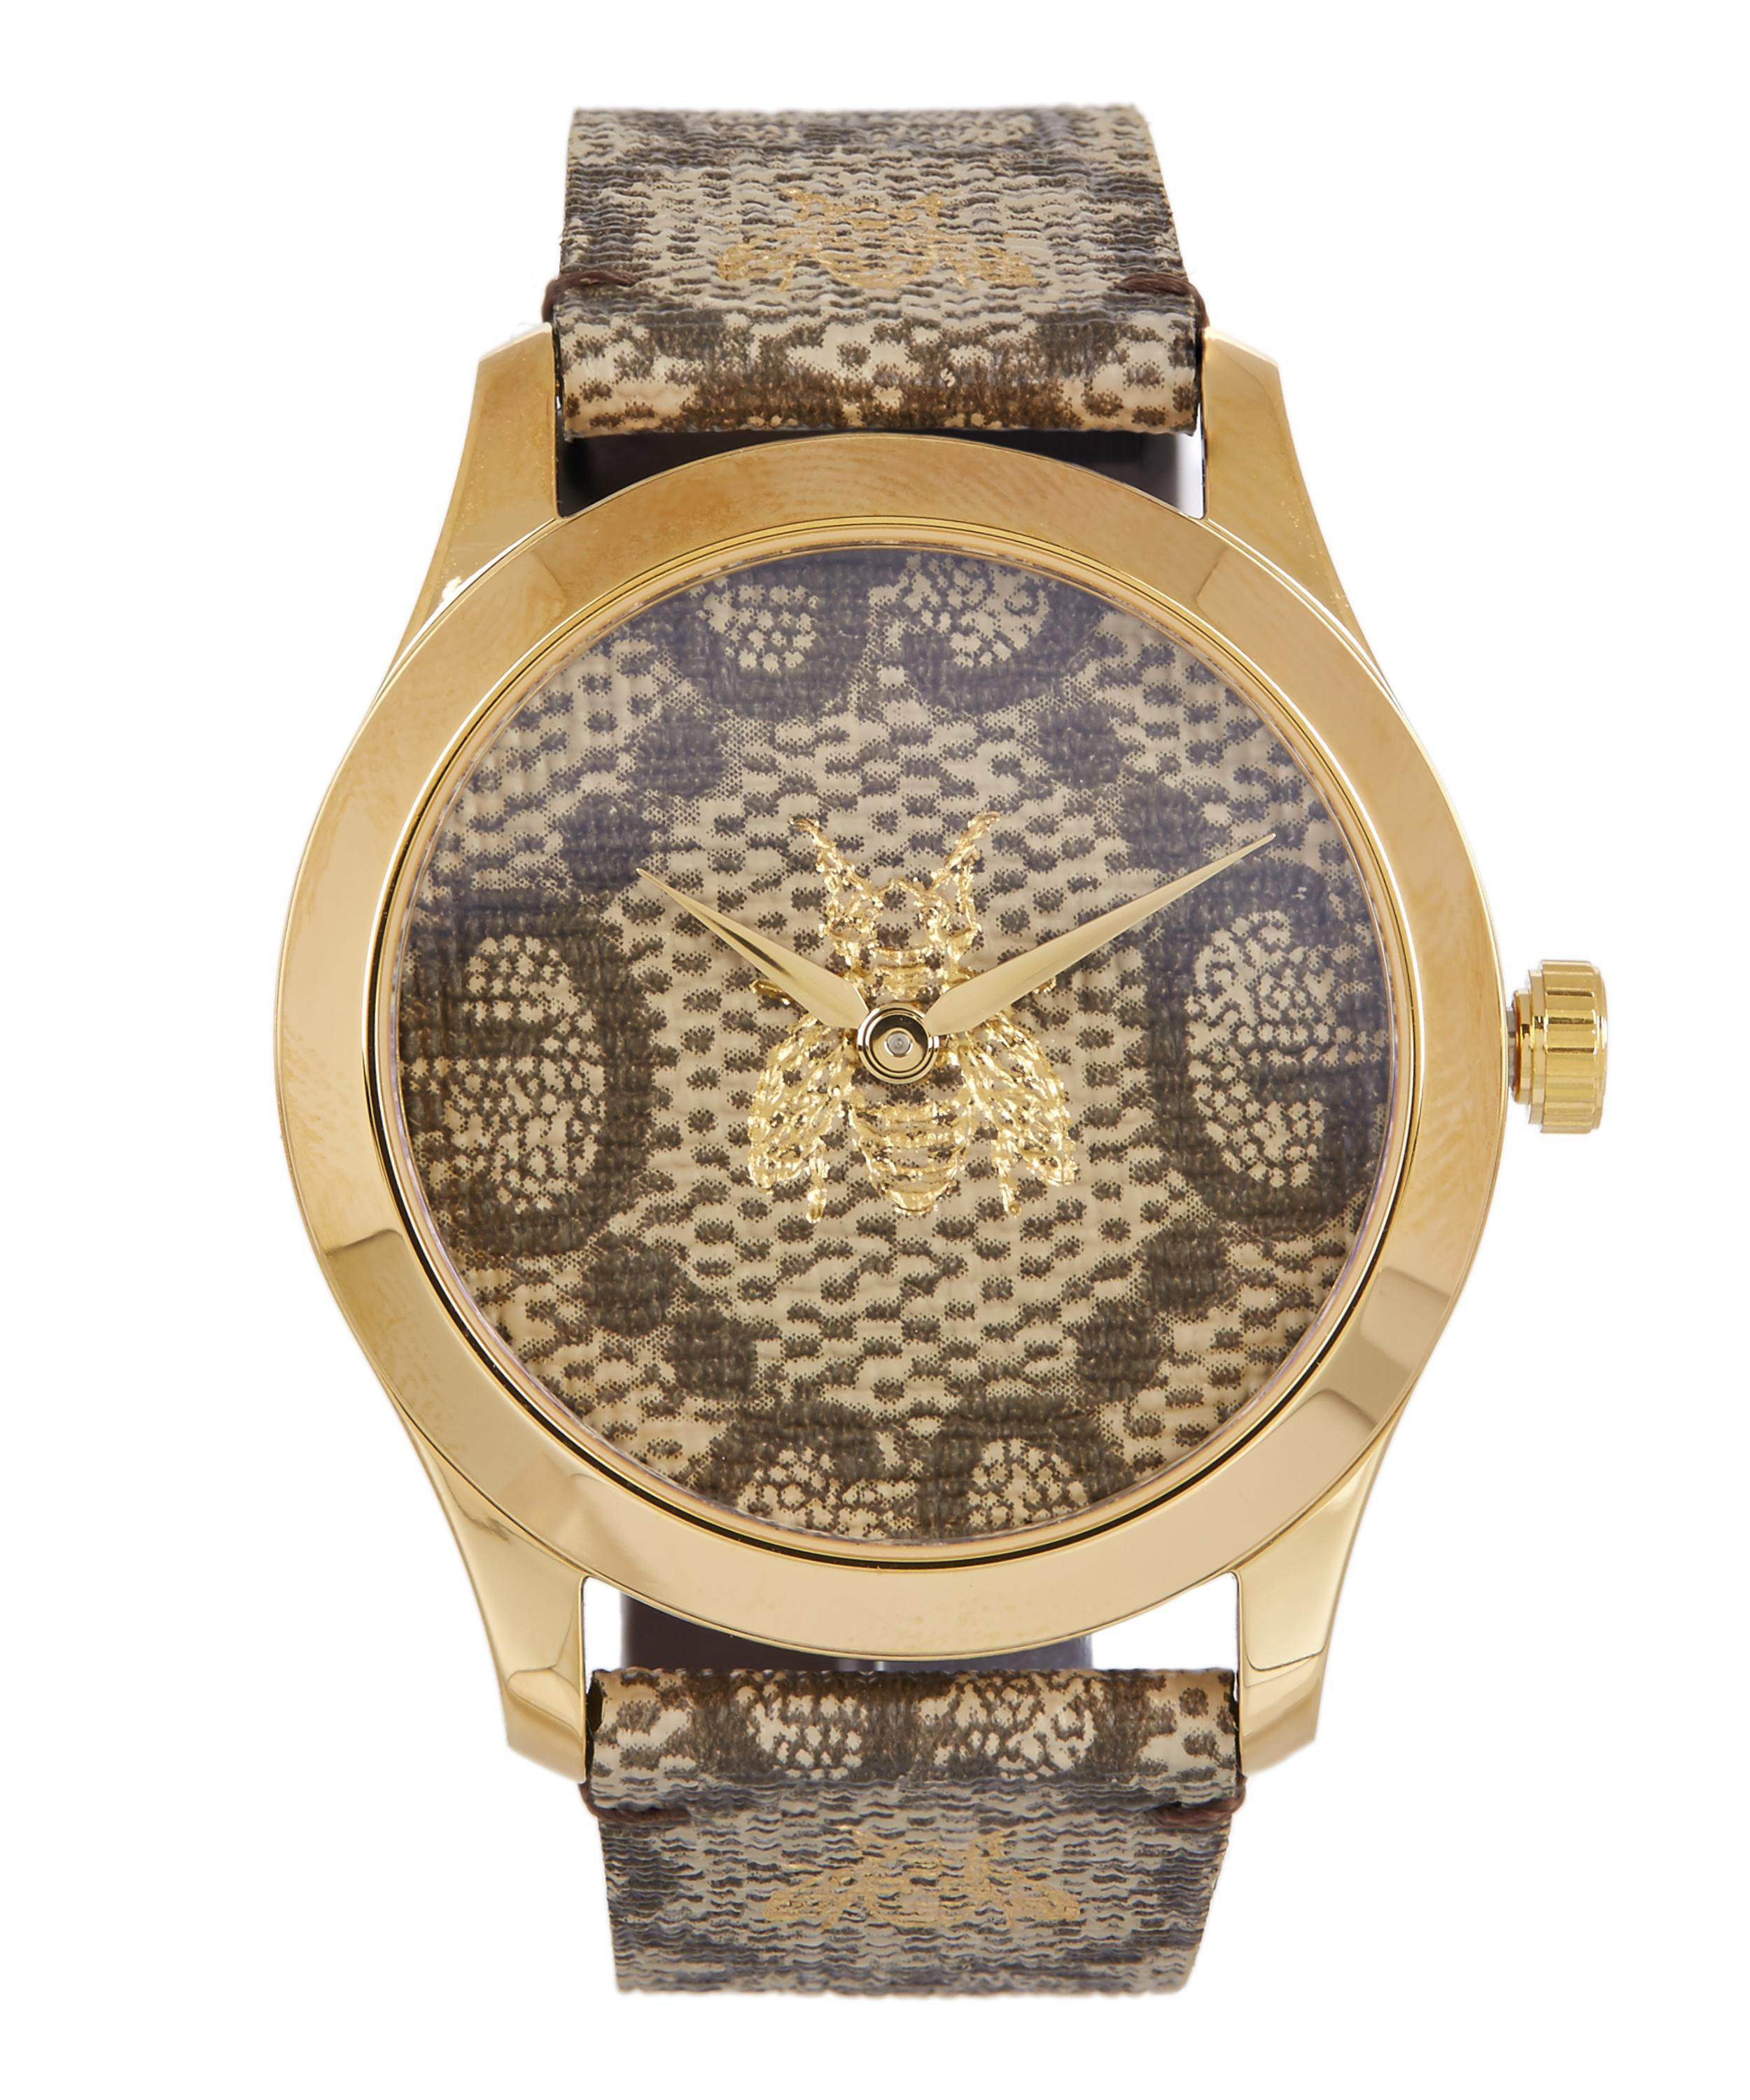 45a3a64ad01 Gucci G-timeless Leather Logo Bee Motif Watch in Brown for Men - Lyst